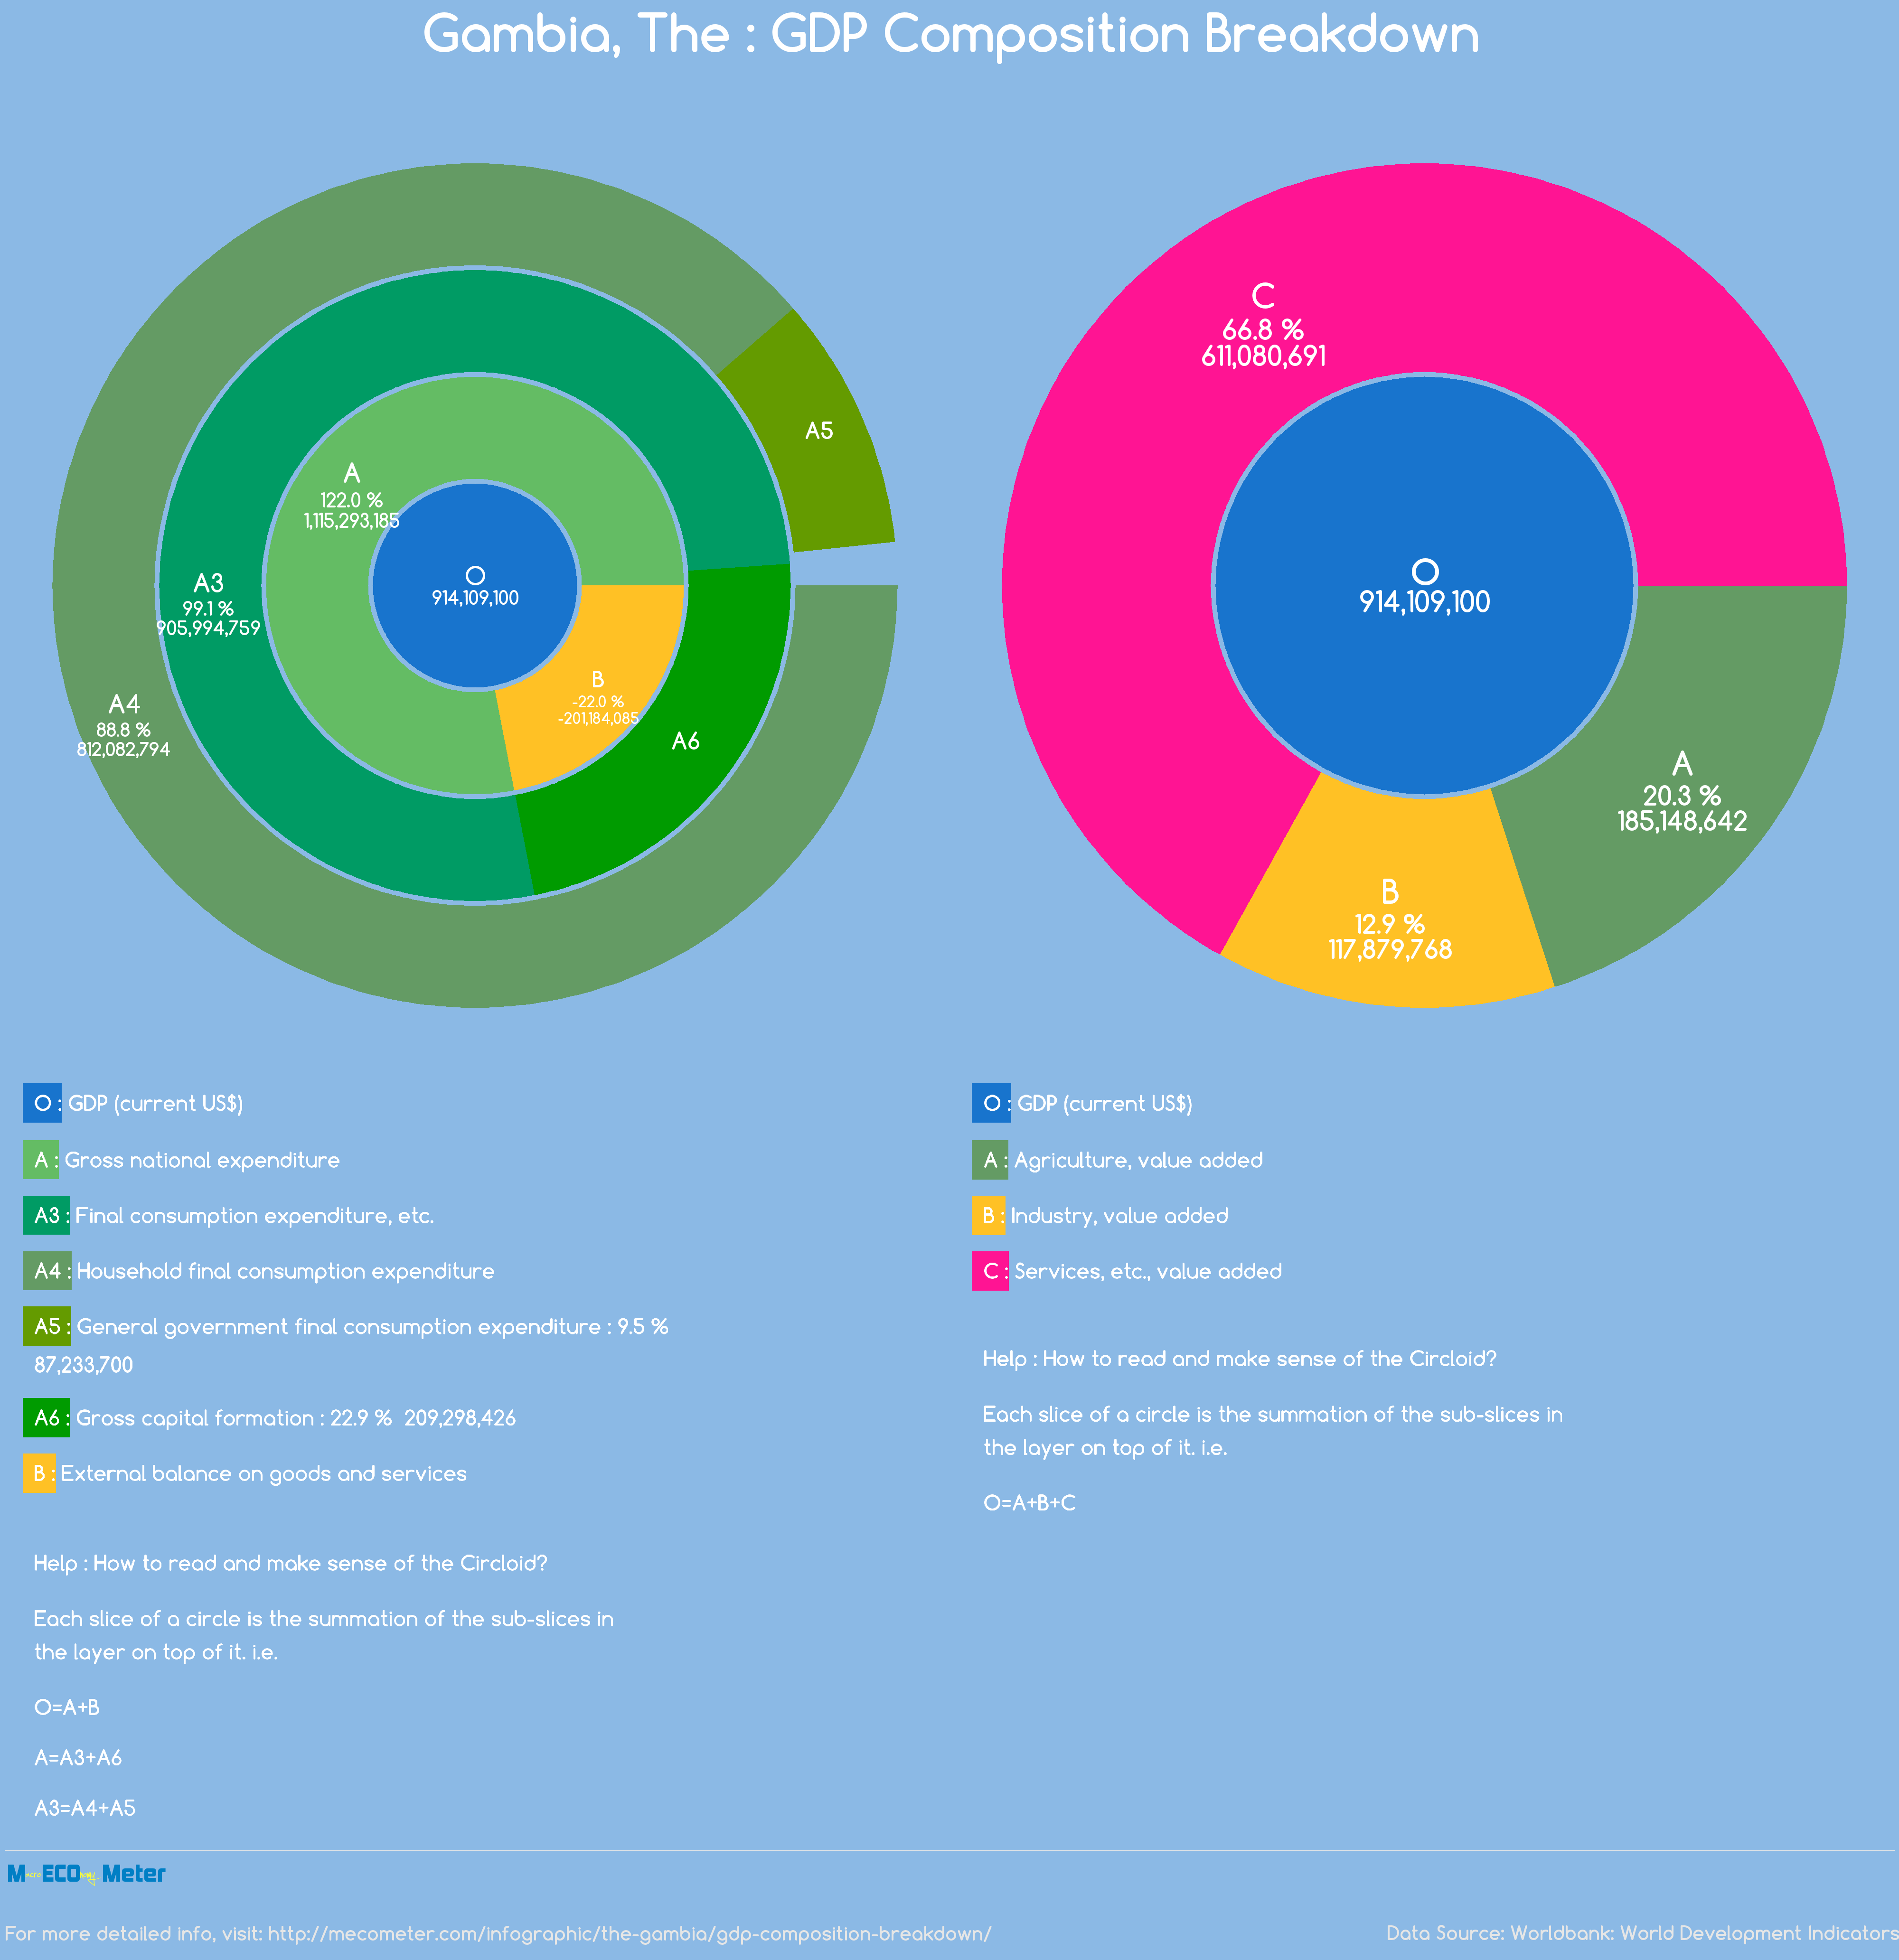 Gambia, The : GDP Composition Breakdown